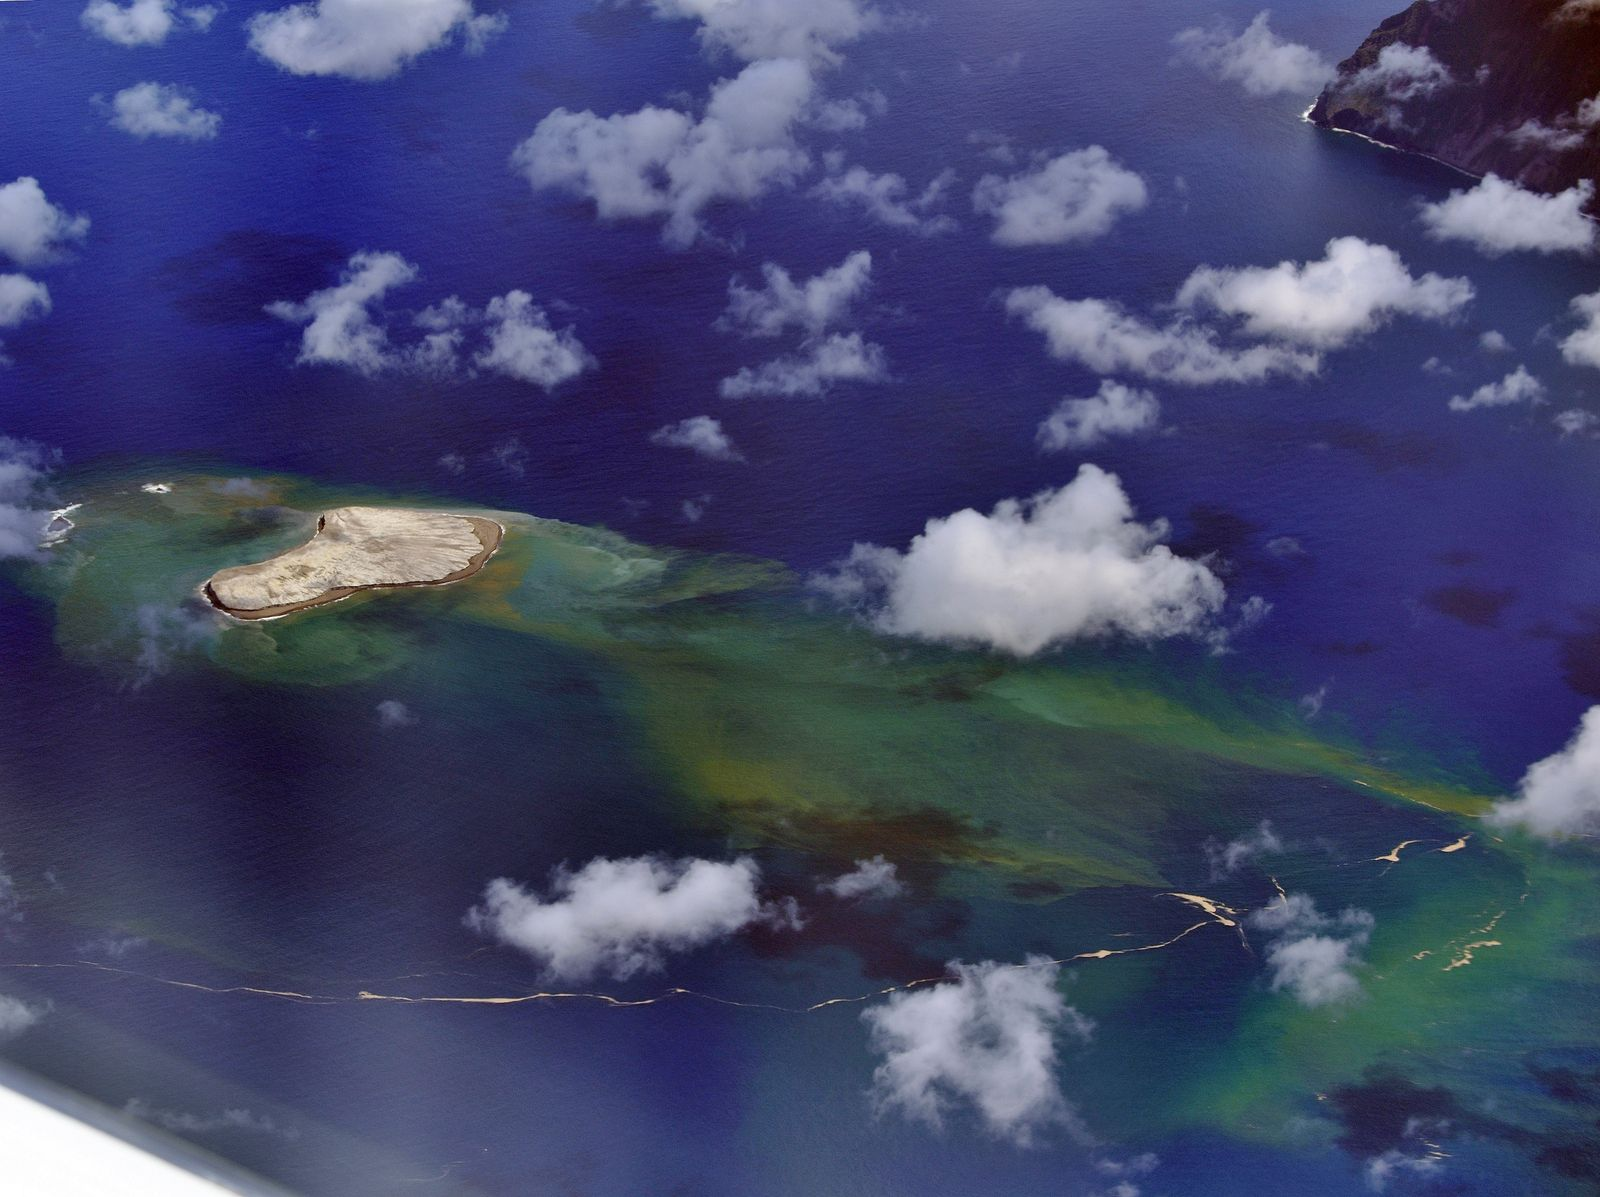 Fukutoku Okanoba - the coloring of the waters testifies to a volcanic activity still ongoing on 08/26/2021 / 12:50 p.m. - photo Japan Coast Guards - one click to enlarge